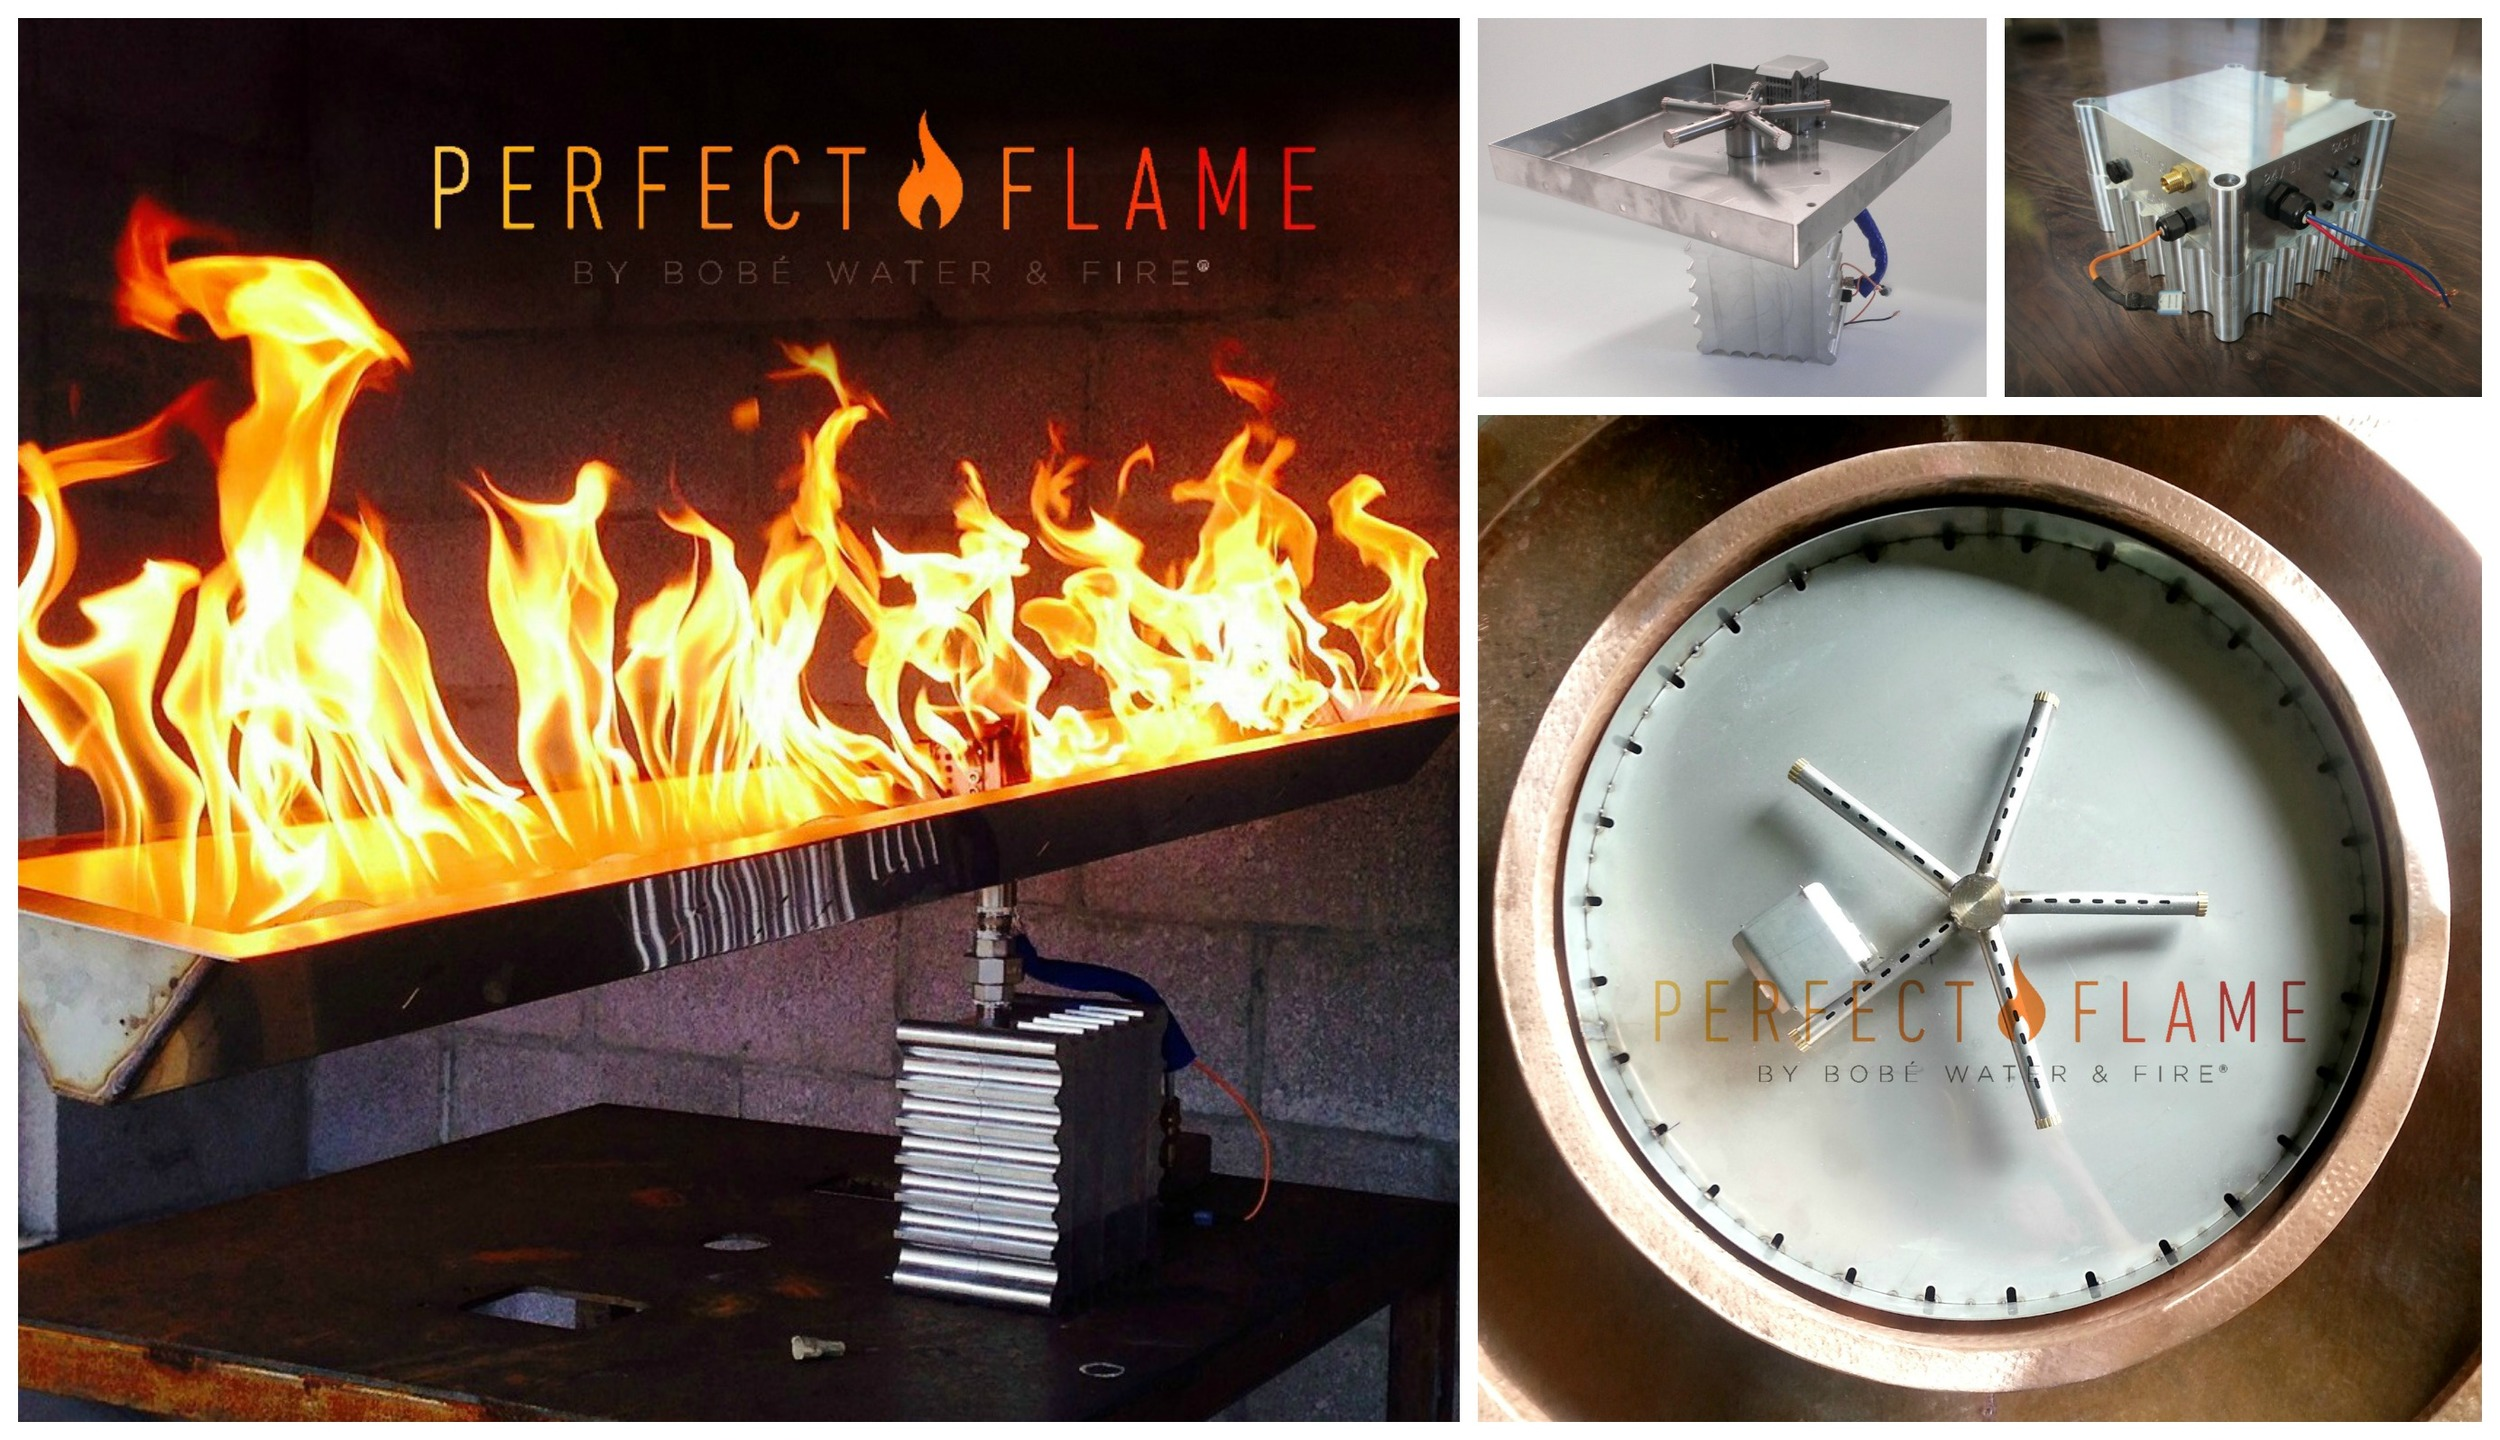 IgnitionPerfect Flame Collage.jpg